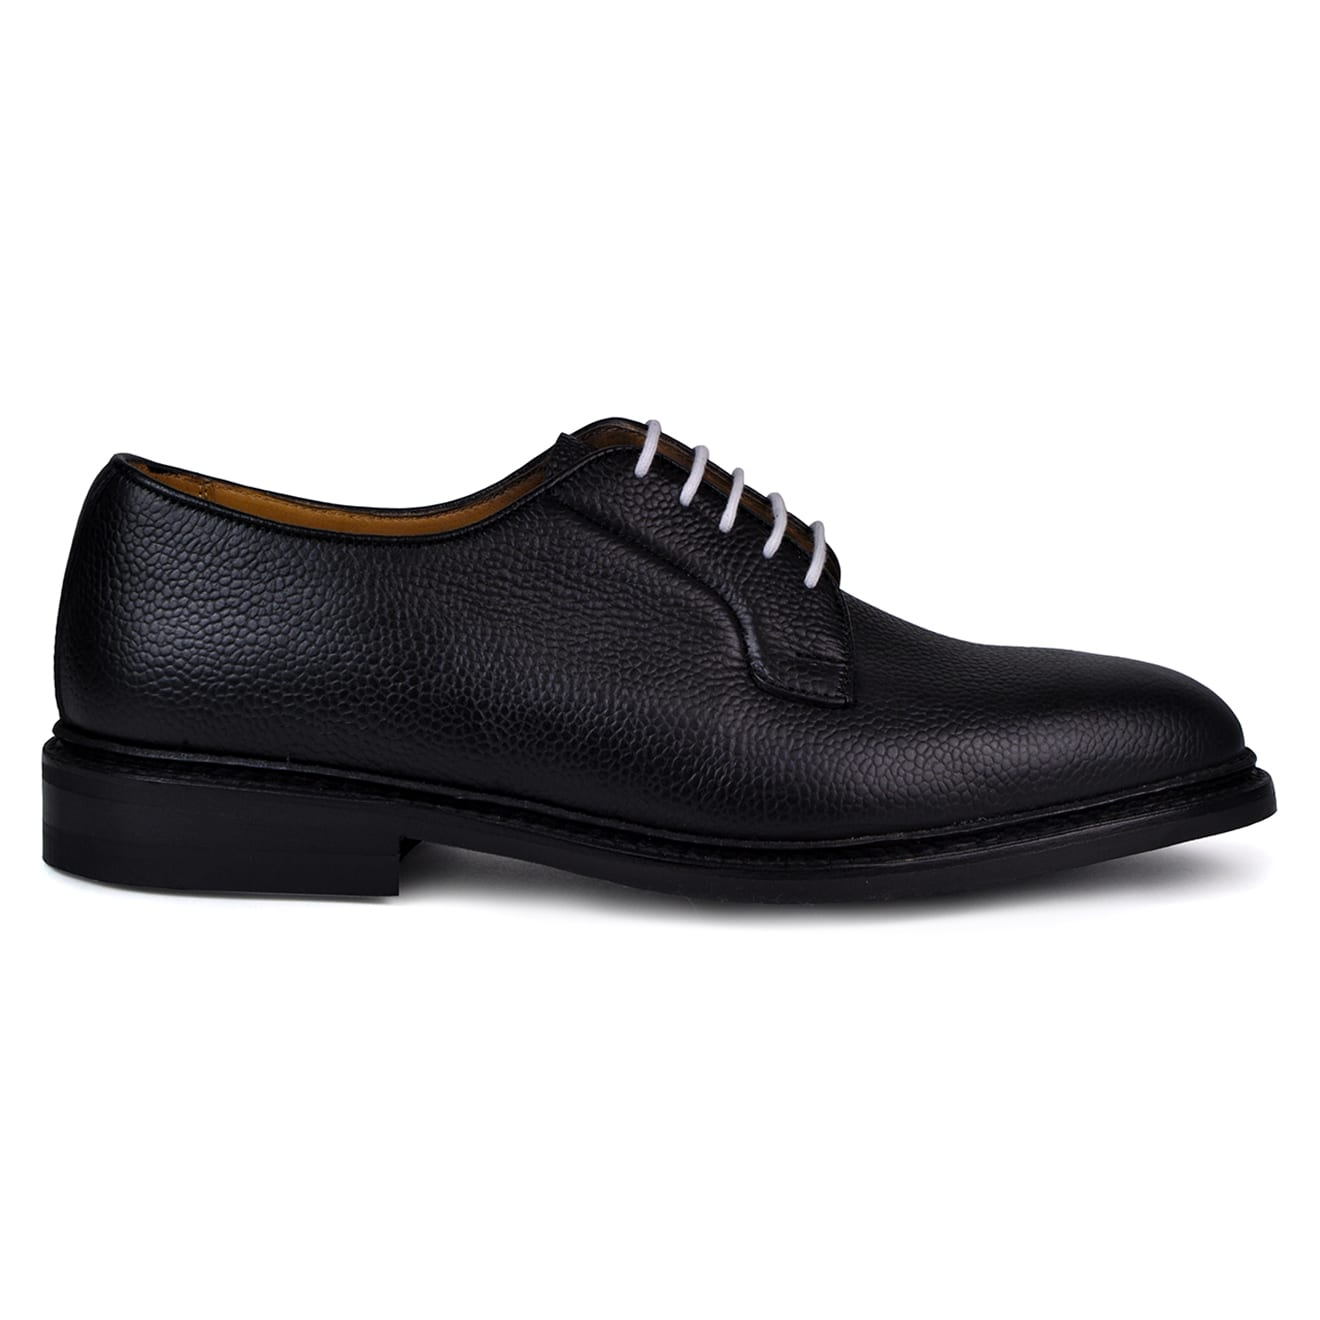 Trickers fenwick olivvia black